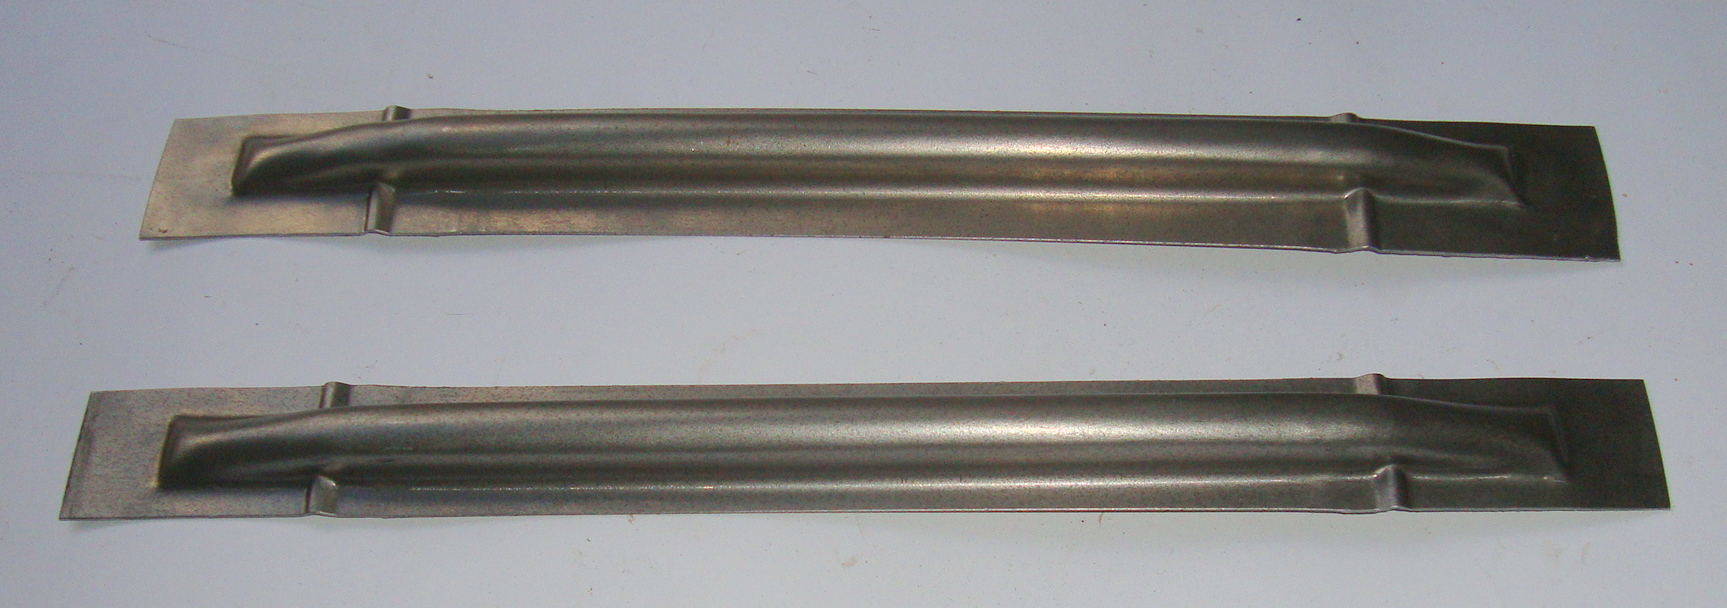 Rod floorboard, Vespa 50 / 90 / 125